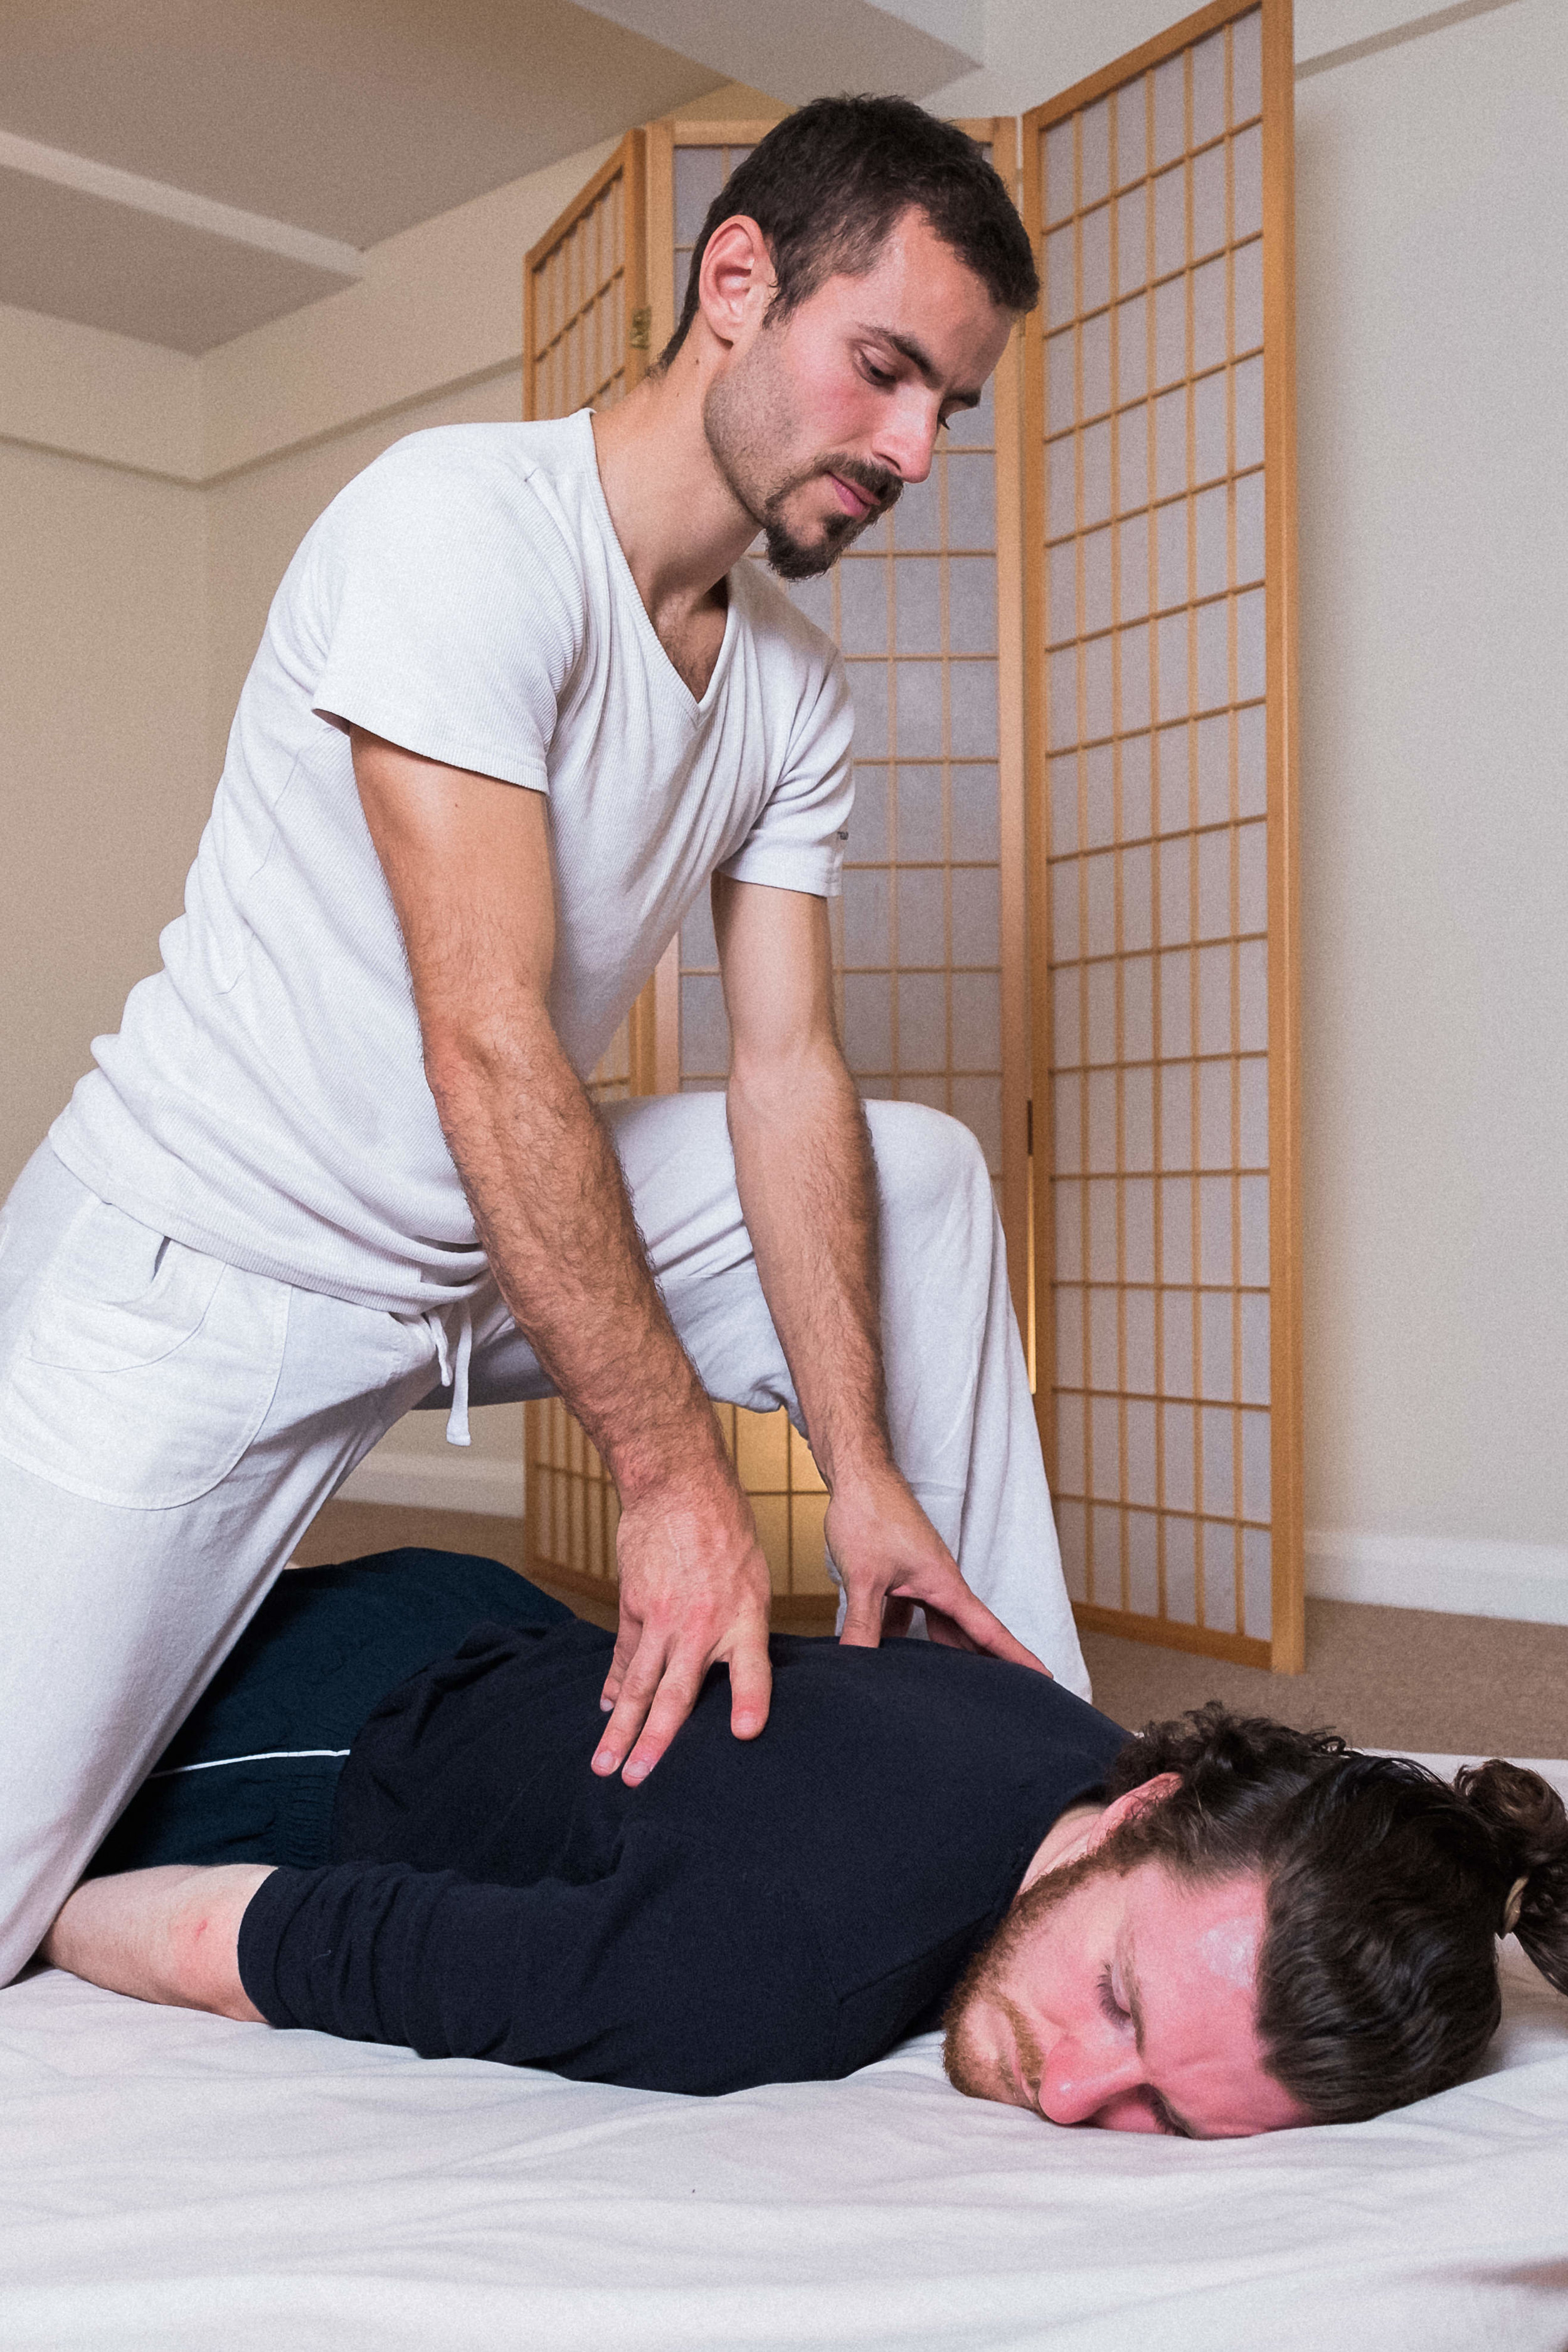 Massage-Edinburgh-Fern-Photography-0062-ZF-2290-64275-1-001-061.jpg